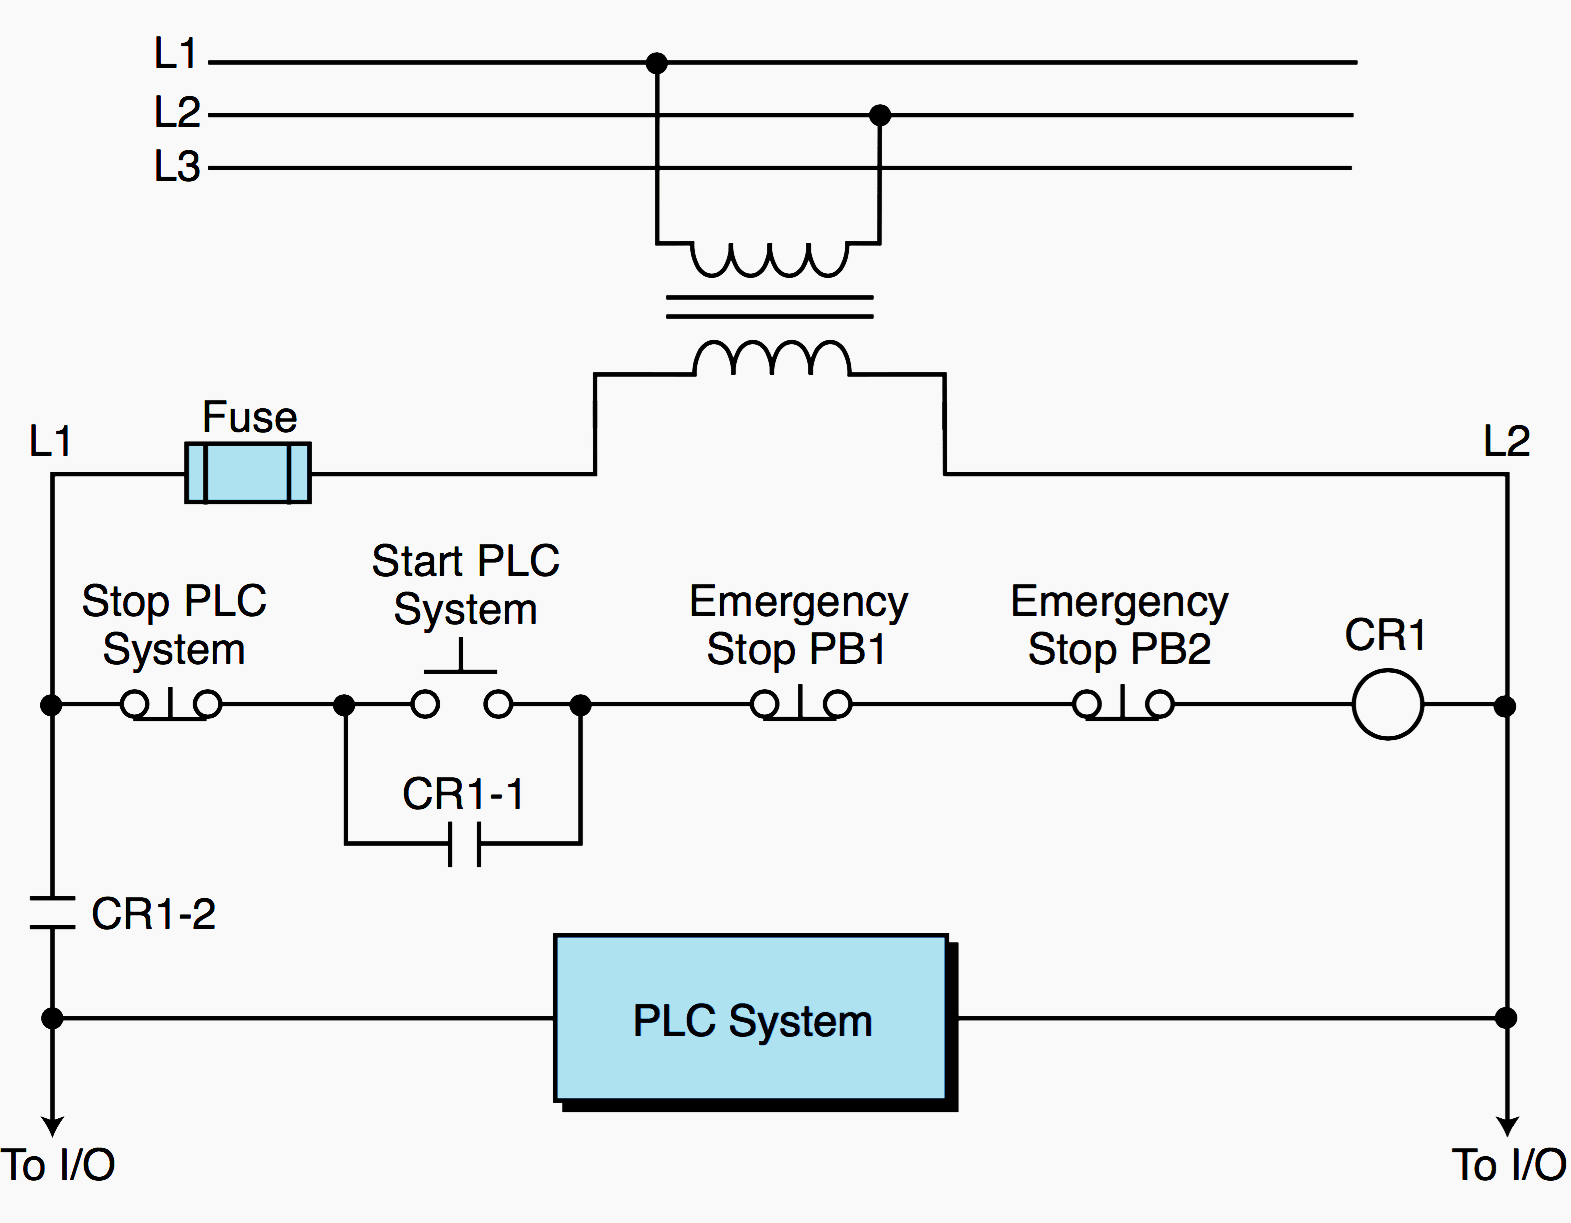 hight resolution of emergency stop diagrams schema diagram database ladder diagram of a common emergency stop circuit